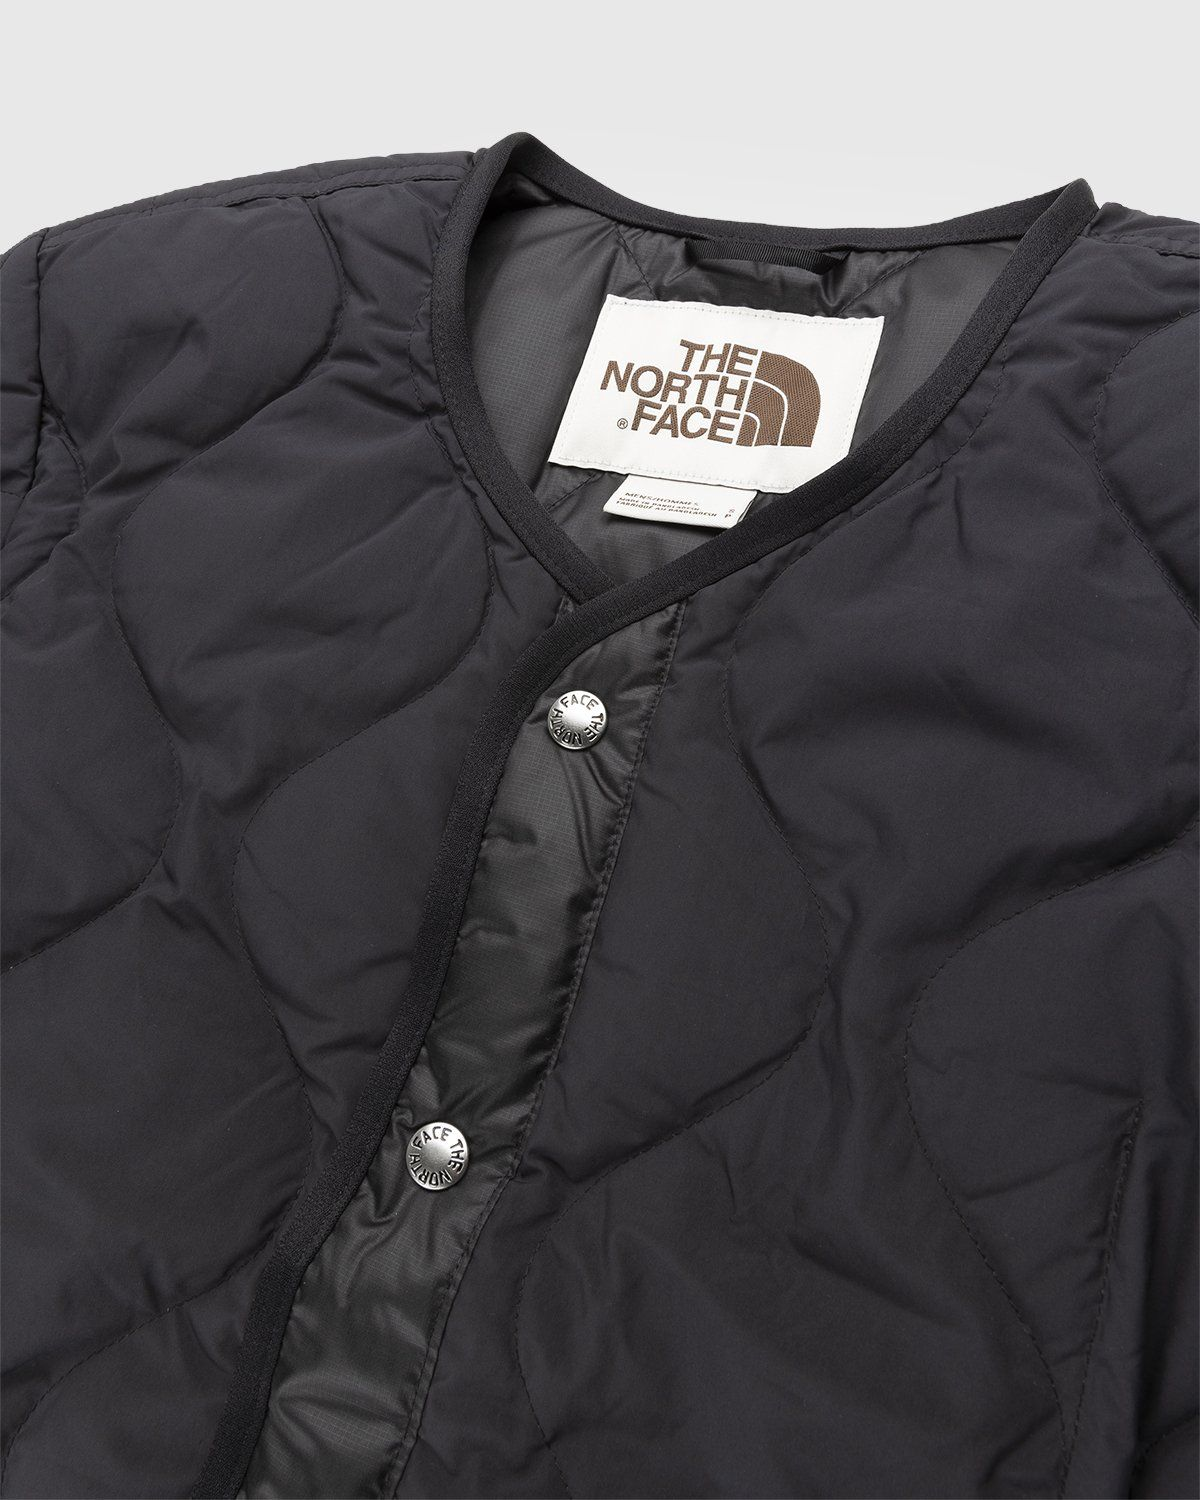 The North Face – M66 Down Jacket Black - Image 3